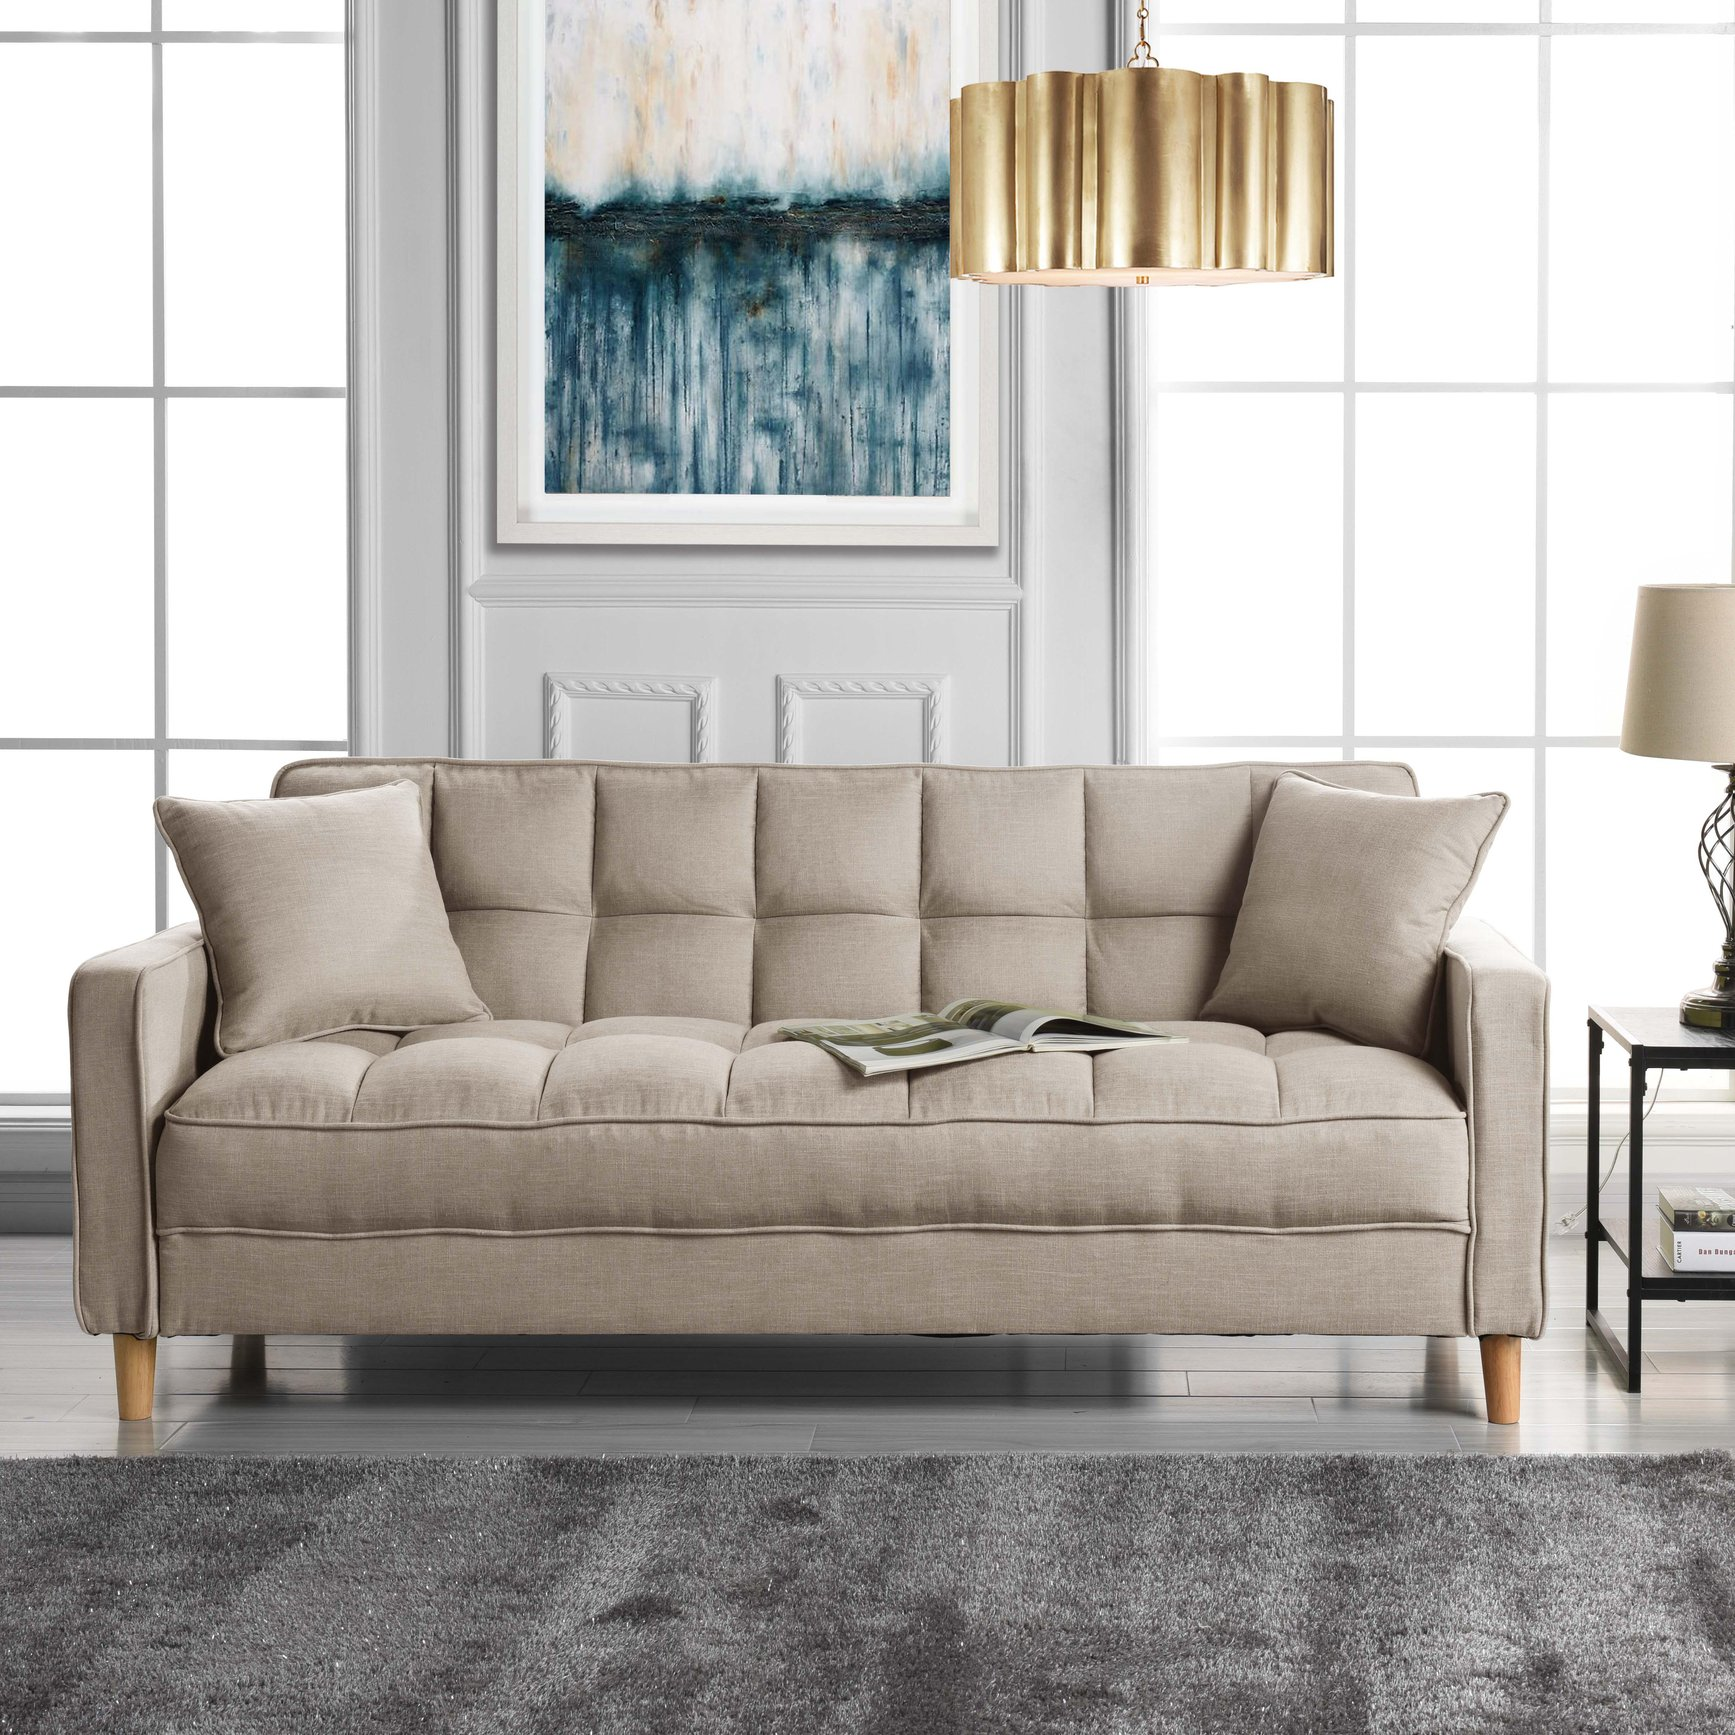 Details about Modern Small Space Living Room Sofa Linen Fabric Tufted Couch  (Beige)